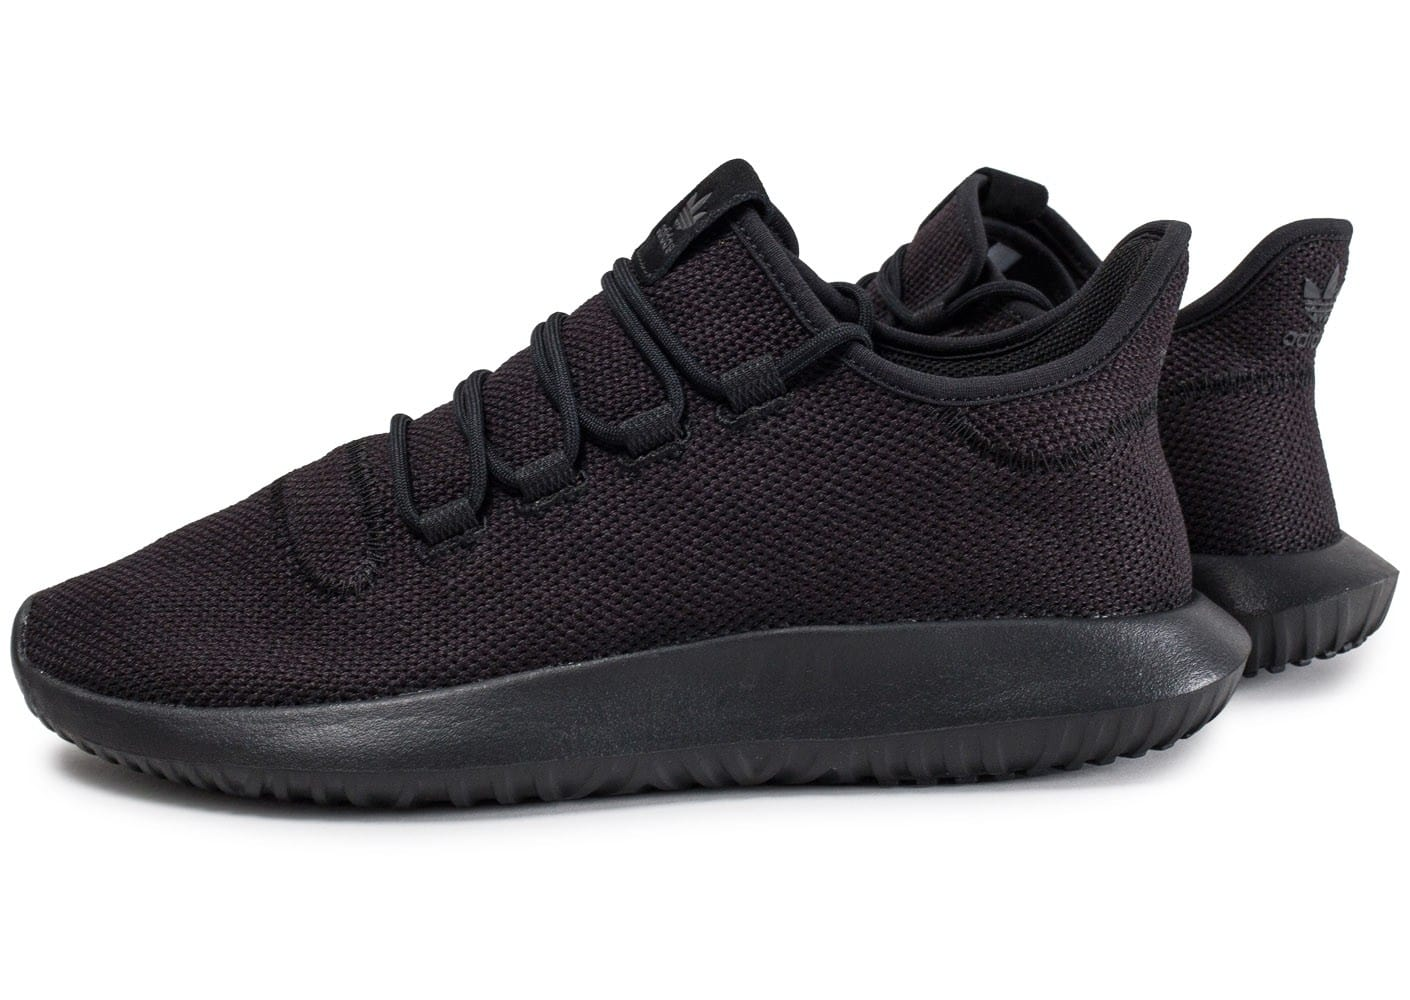 Chaussured Adidas Tubular Shadow Noire Chaussures Homme Chausport